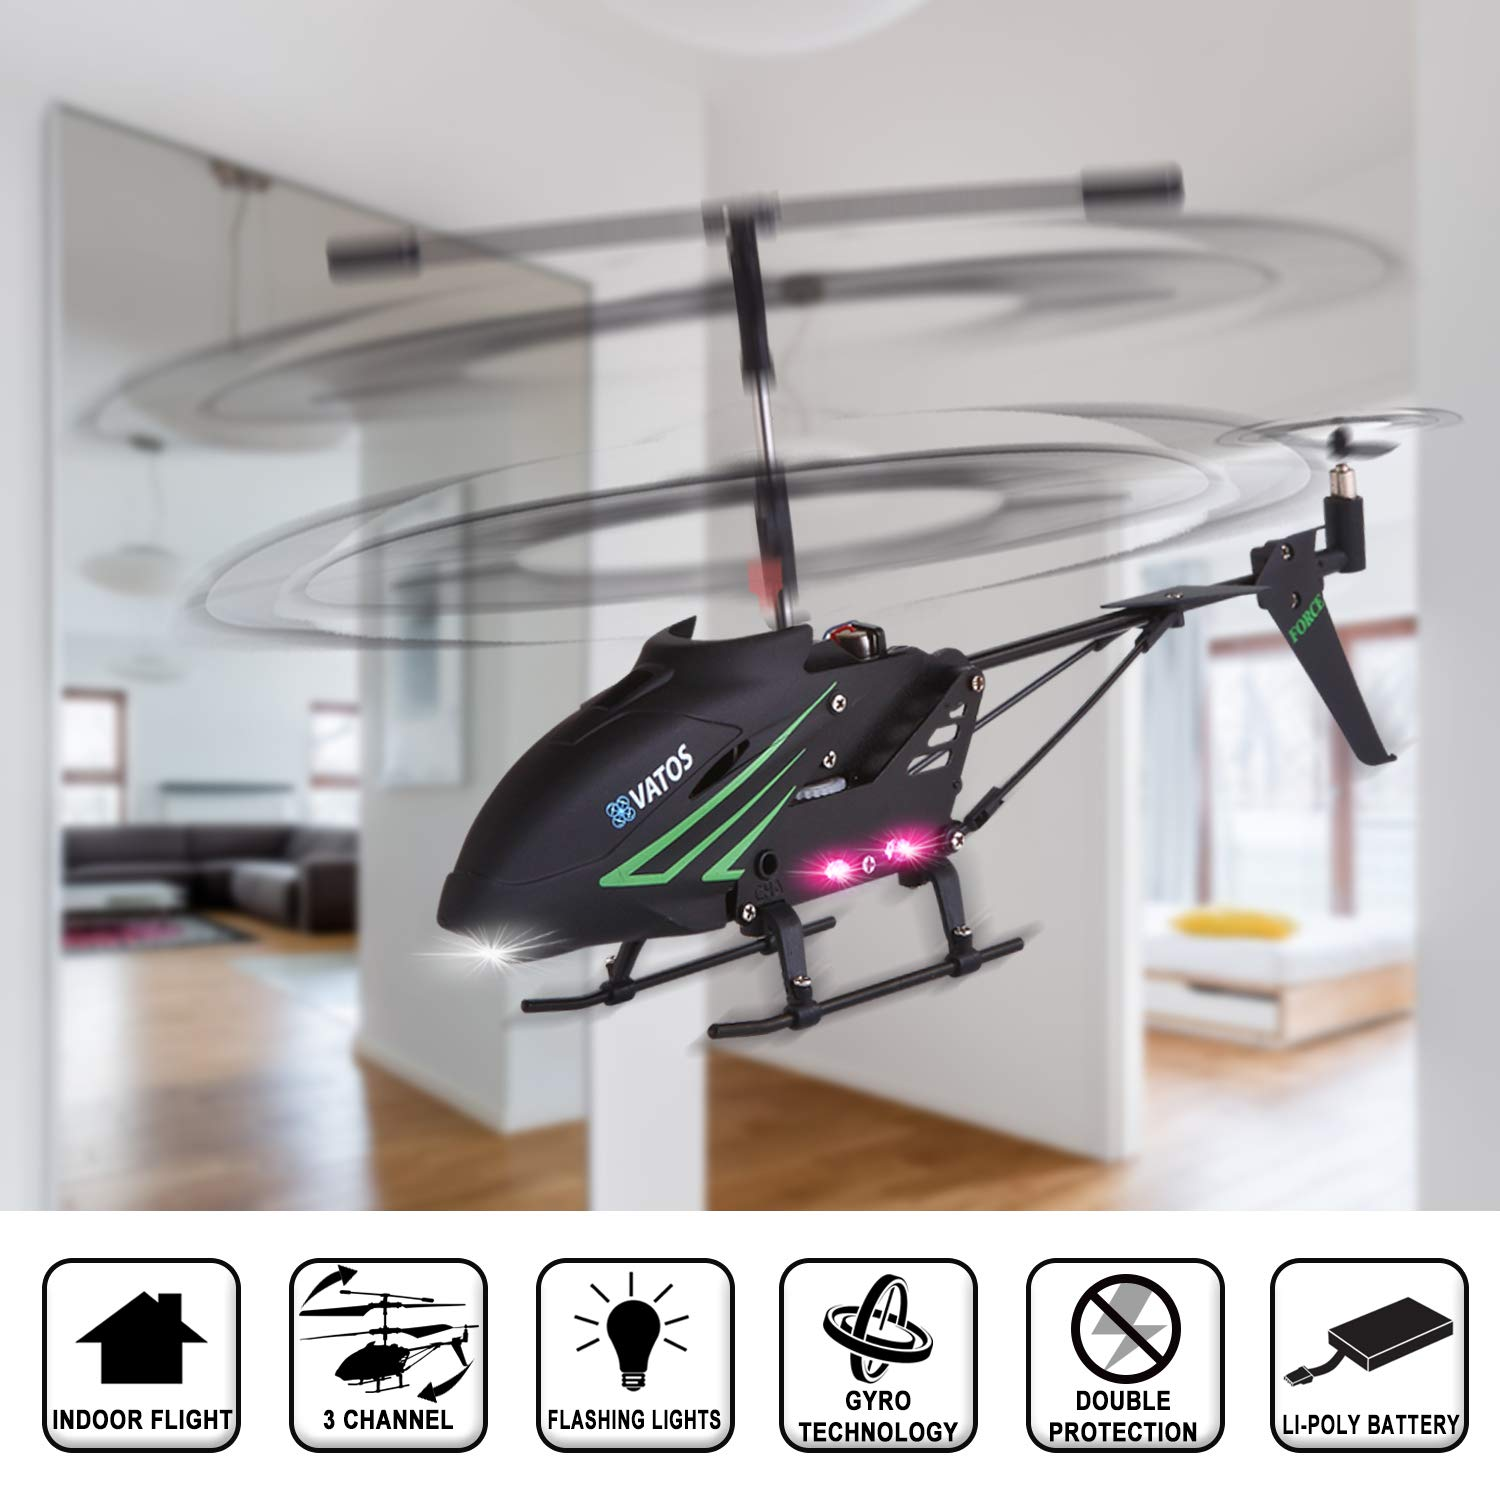 RC Helicopter, Remote Control Helicopter with Gyro and LED Light 3.5HZ Channel Alloy Mini Helicopter Remote Control for Kids & Adult Indoor Outdoor Micro RC Helicopter Best Helicopter Toy Gift by VATOS (Image #4)